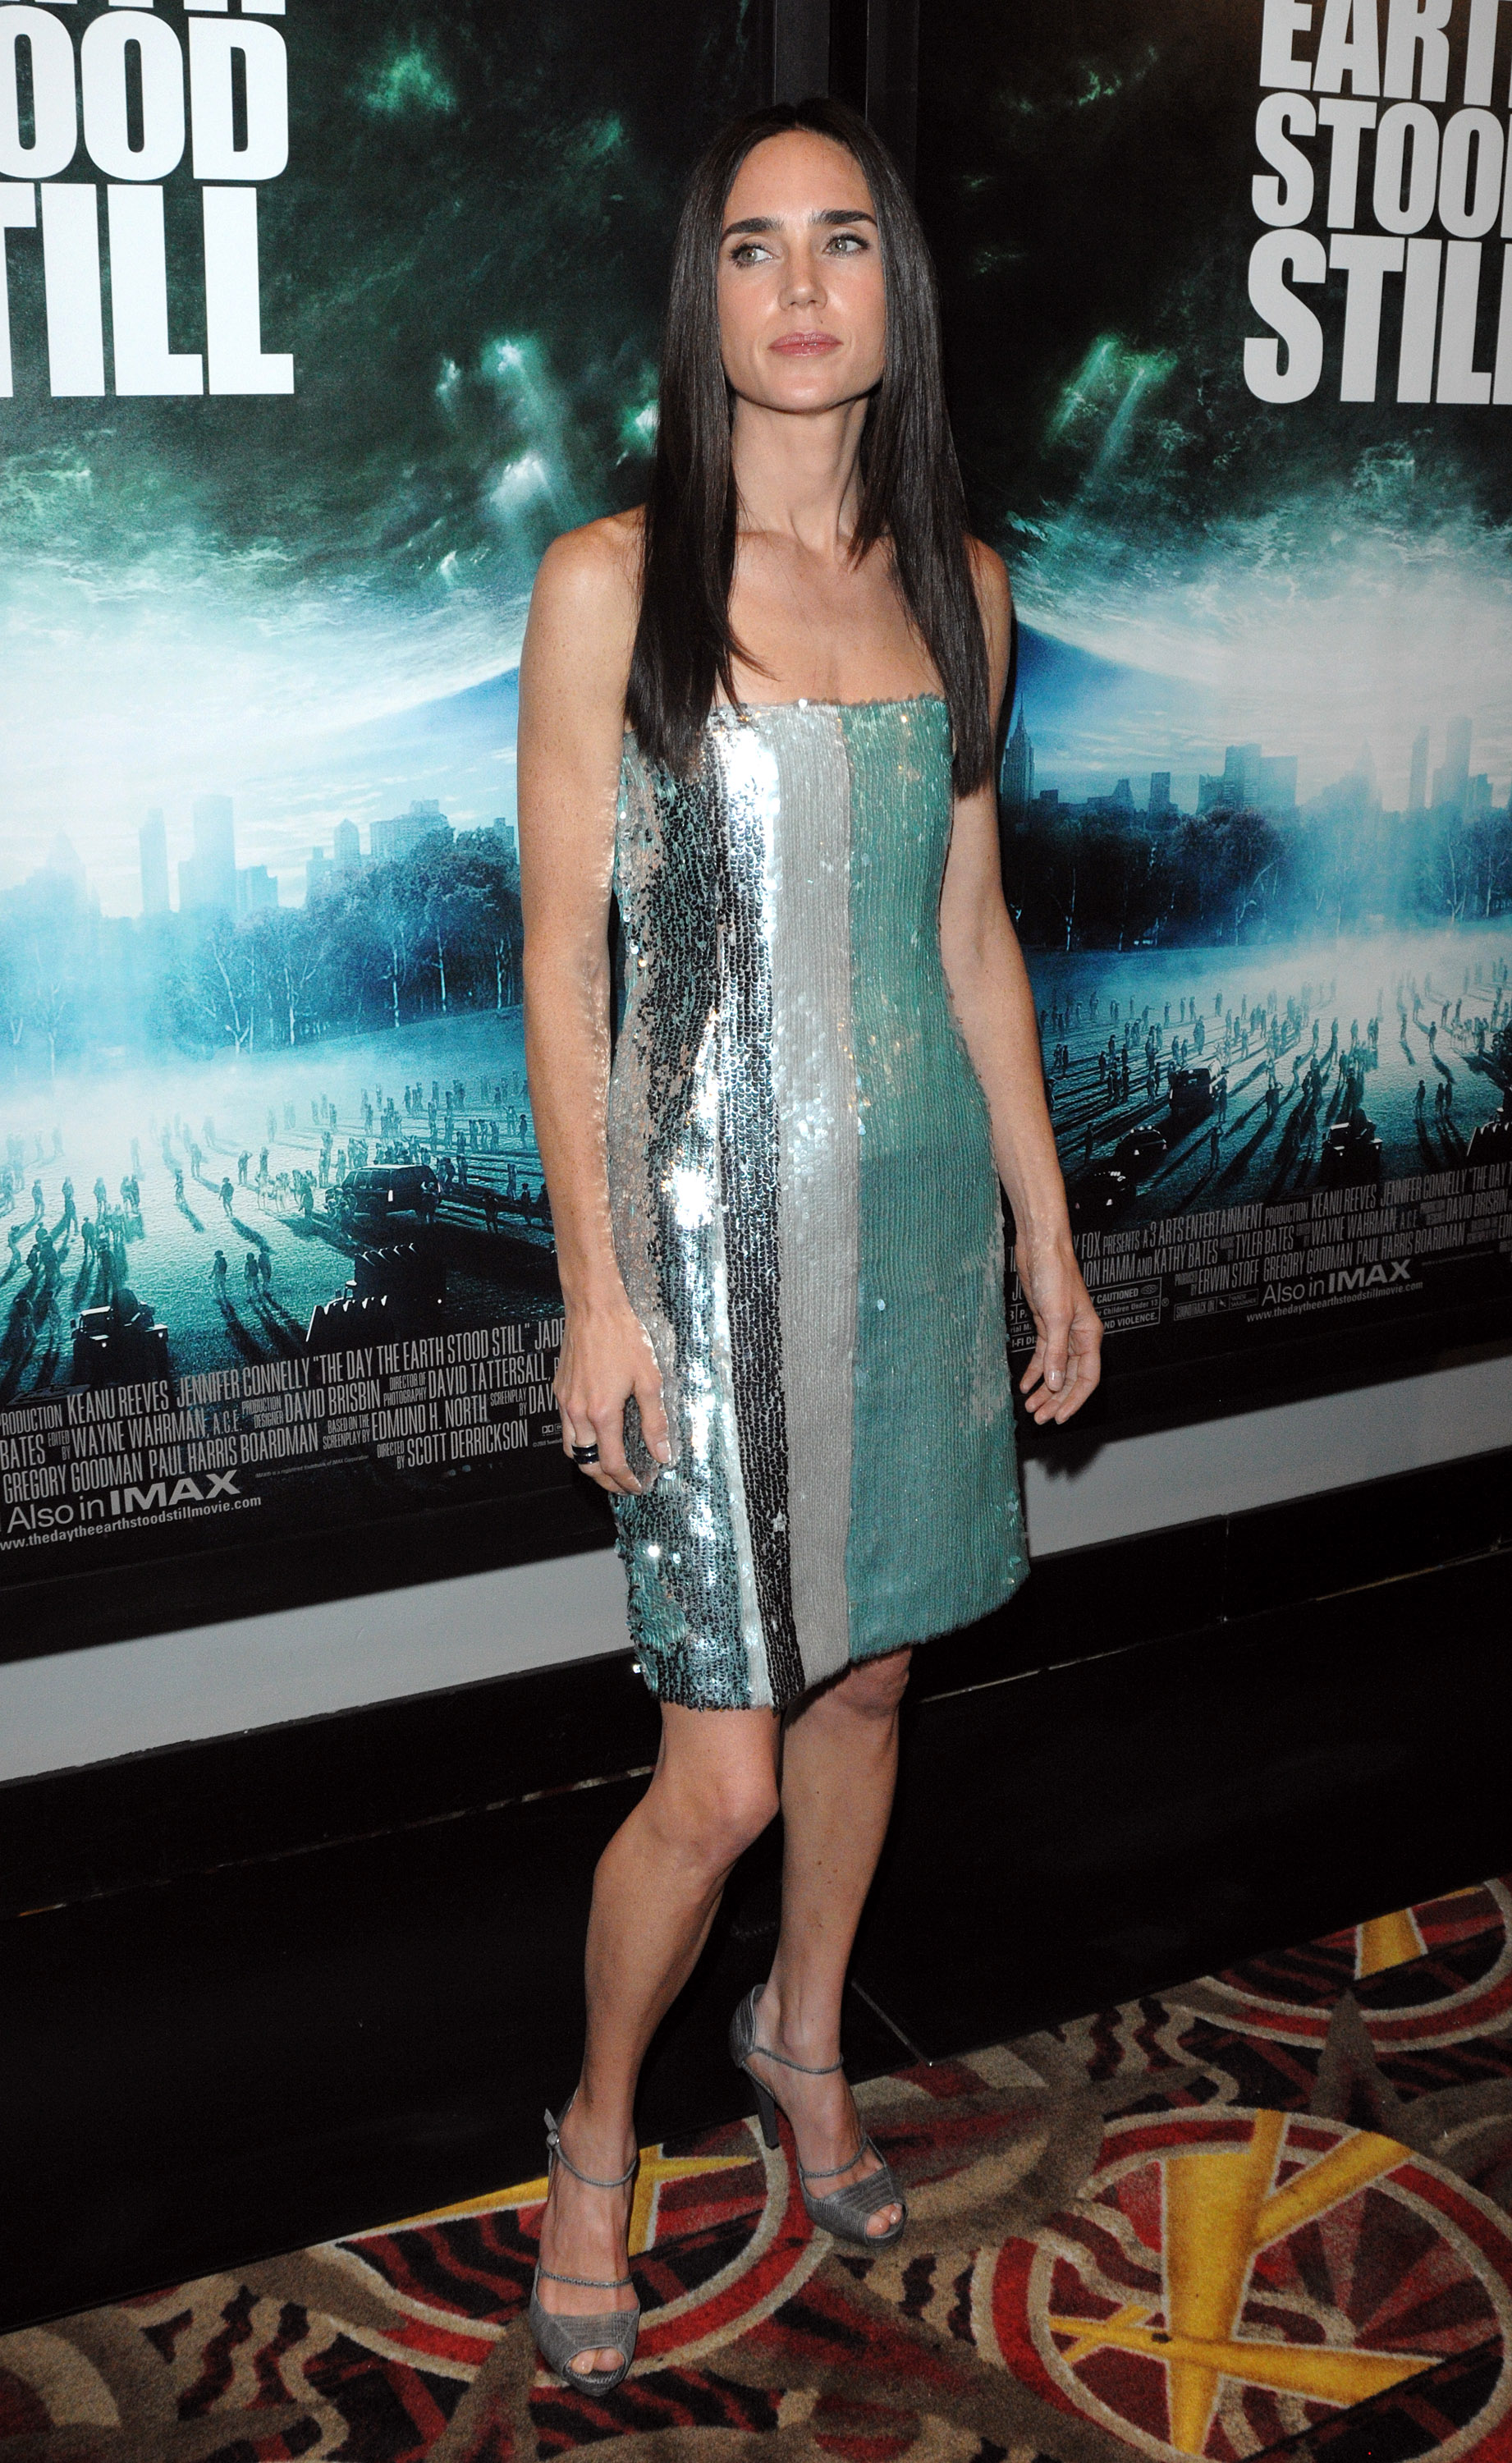 73058_Celebutopia-Jennifer_Connelly-The_Day_The_Earth_Stood_Still_premiere_in_New_York_City-02_122_105lo.JPG